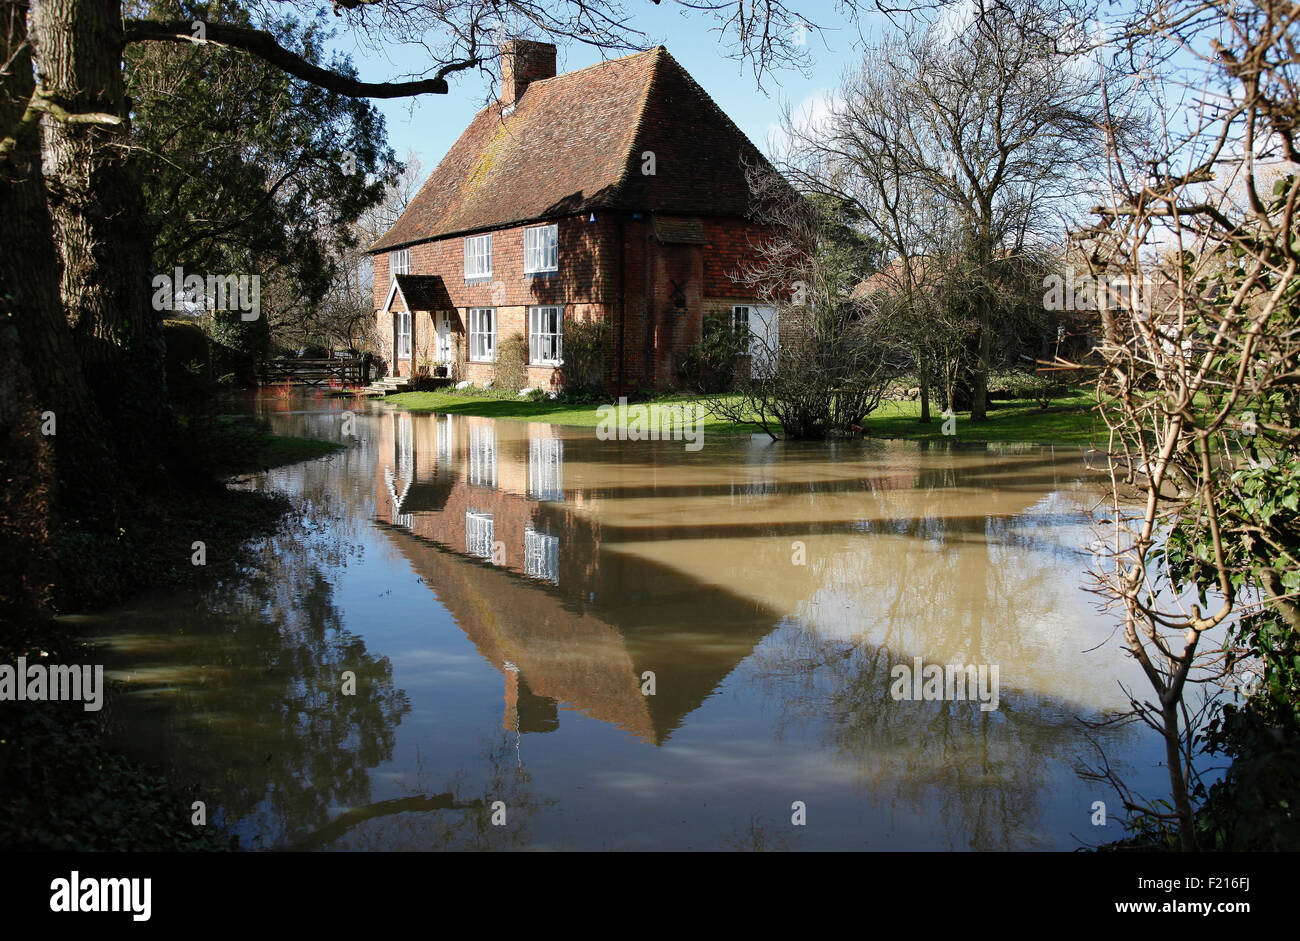 Climate weather flooding house with flooded garden for The headcorn minimalist house kent